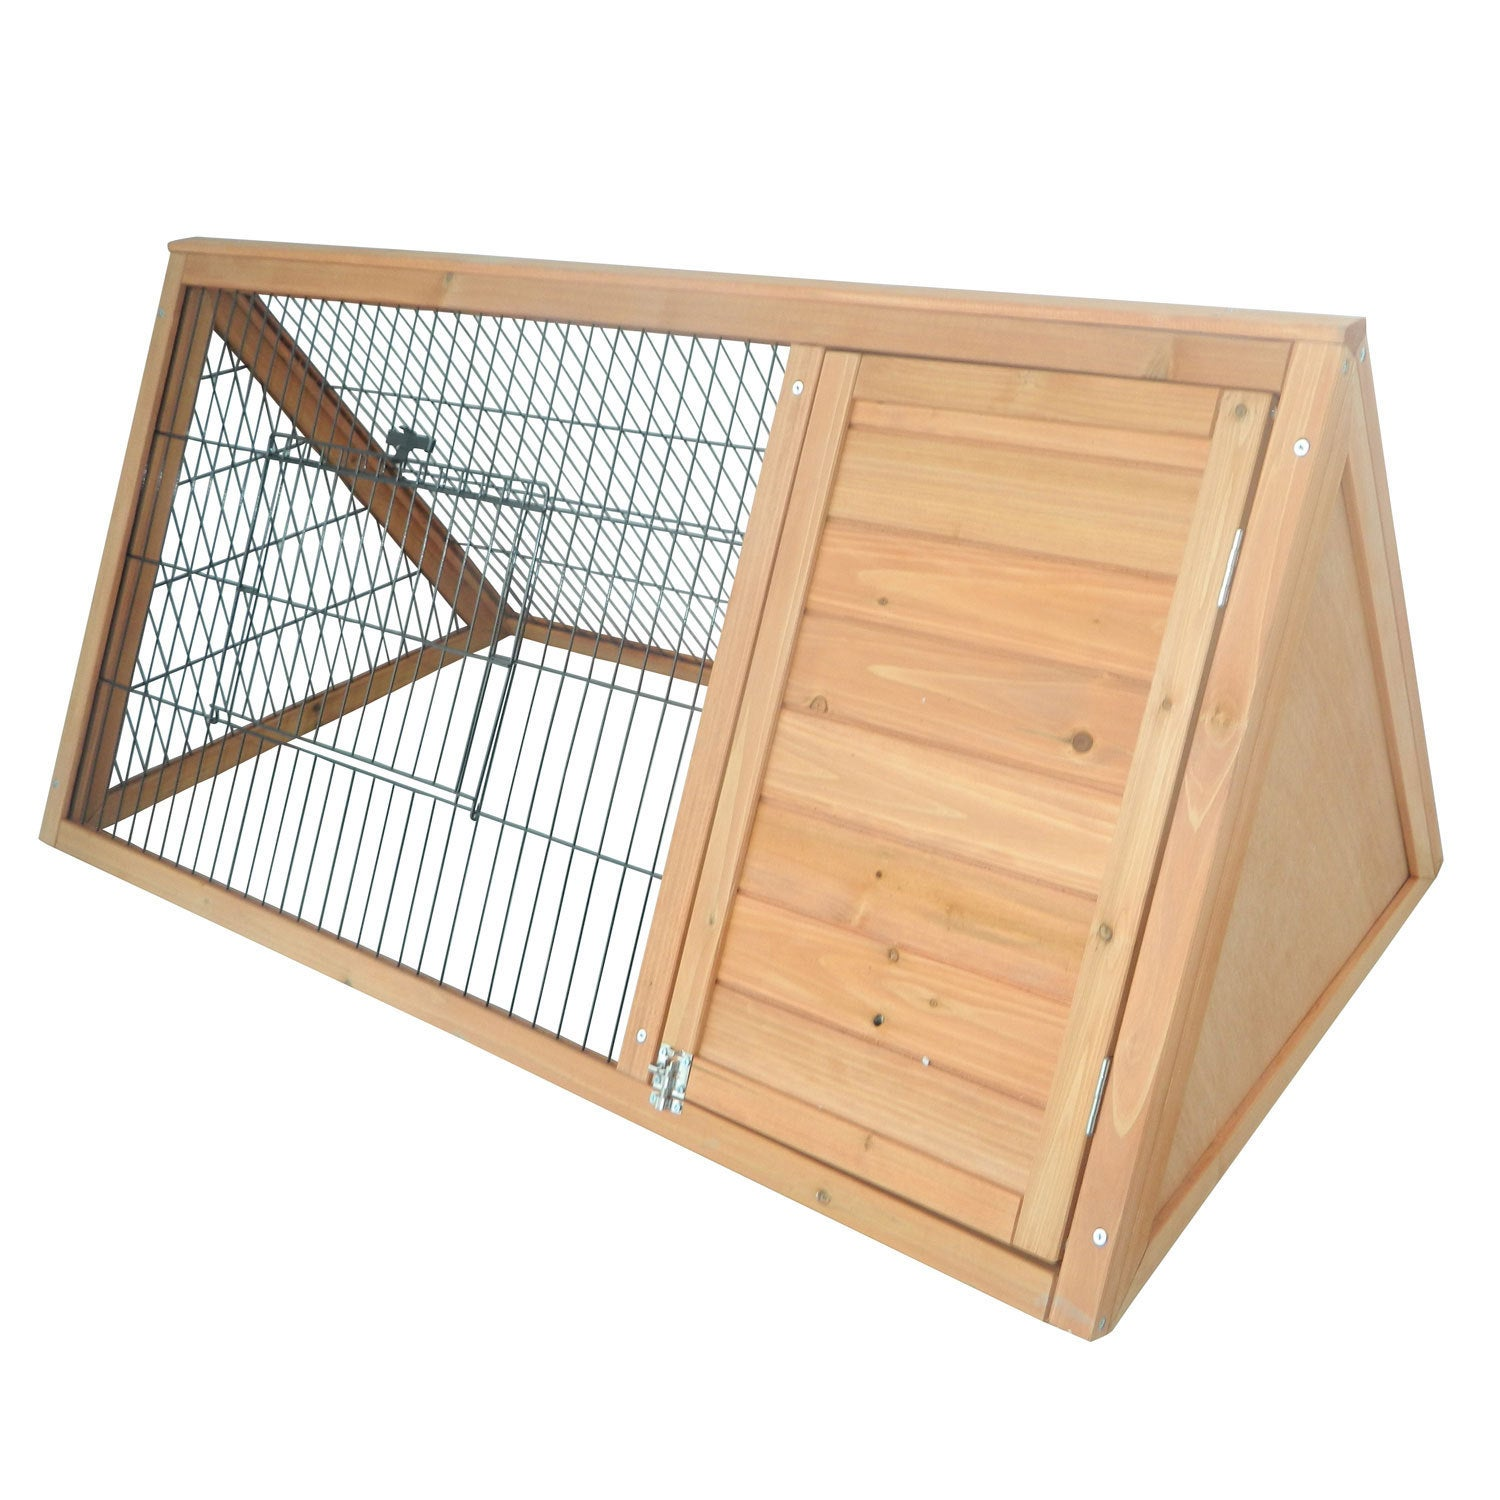 house large hutches itm handmade rabbit ramp wooden sale with coop chicken for habitat run hutch pawhut